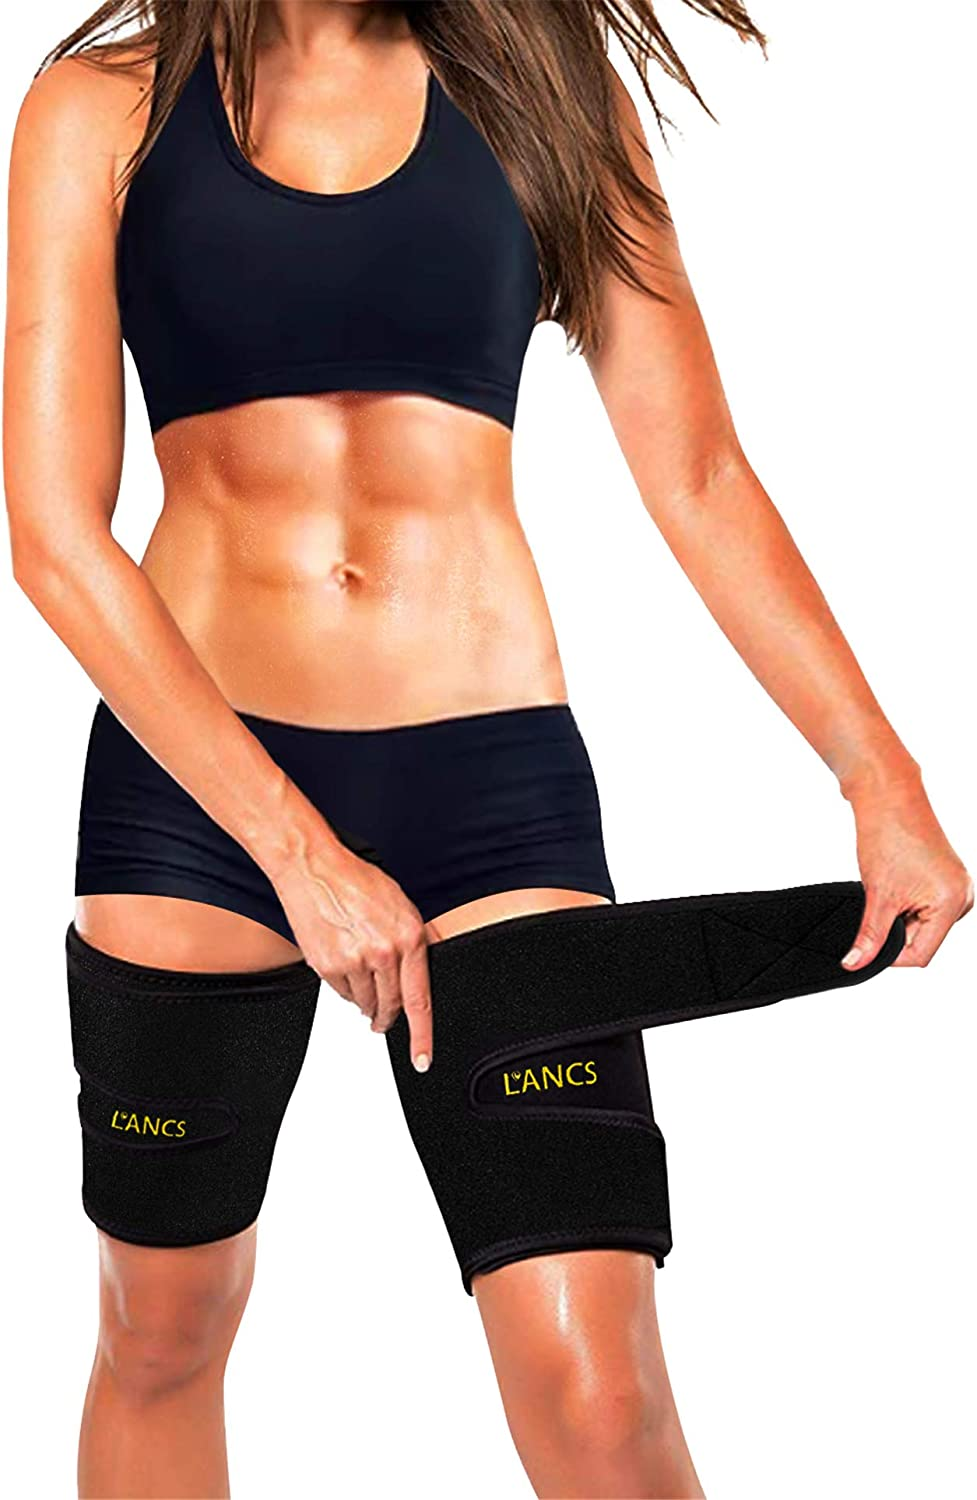 LANCS Arm and Thigh Trimmer Bands for Women and Men Weight Loss Sweat Arm and Thigh Slimmer Wraps